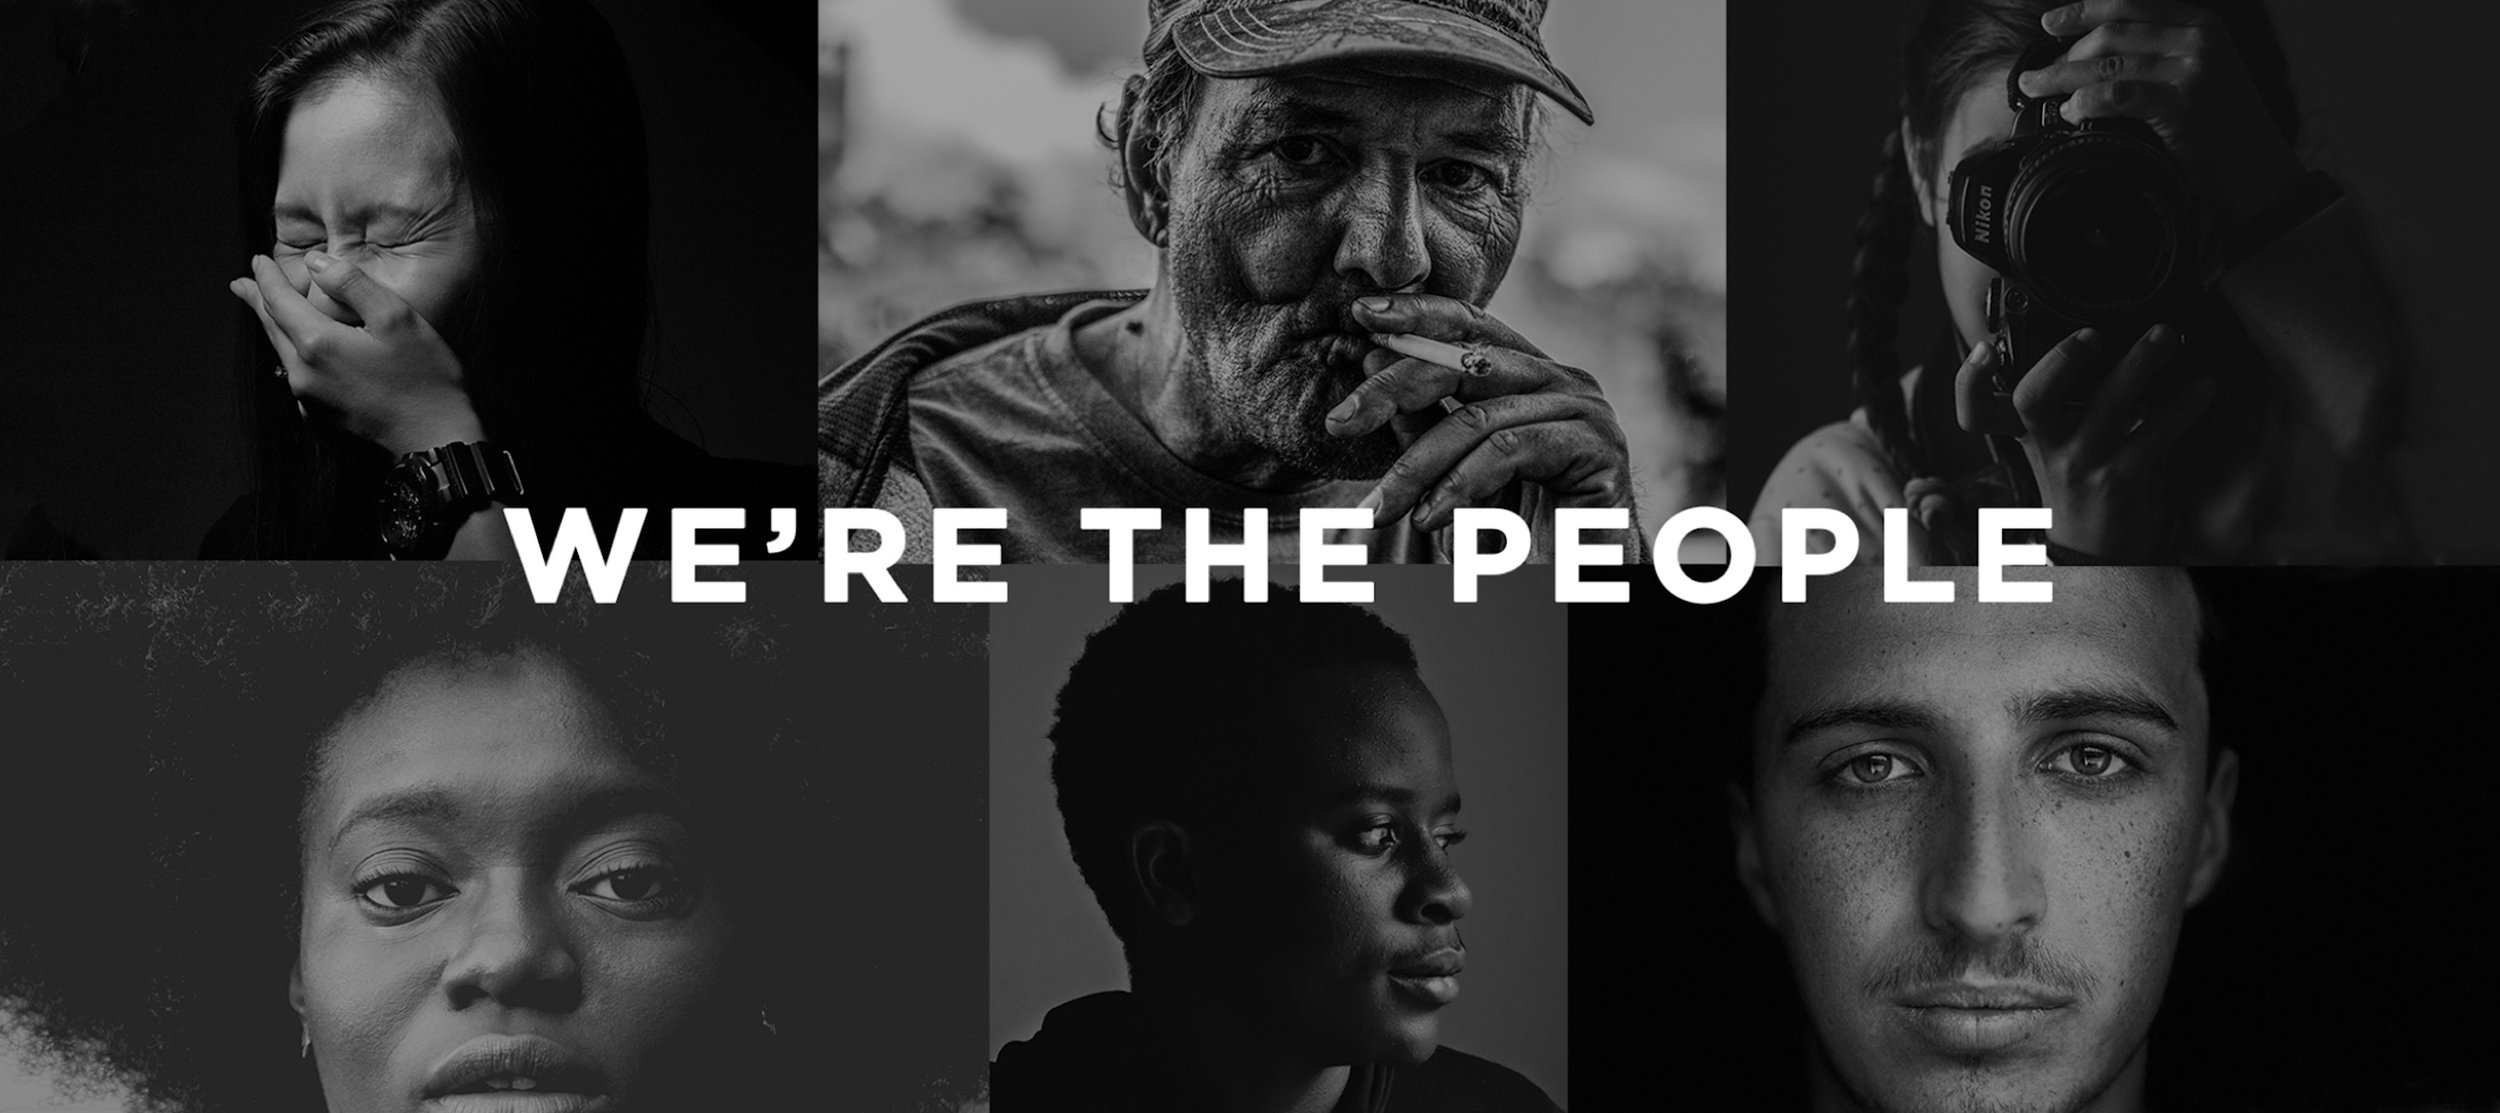 We're The People Youtube Cover Photo.jpg